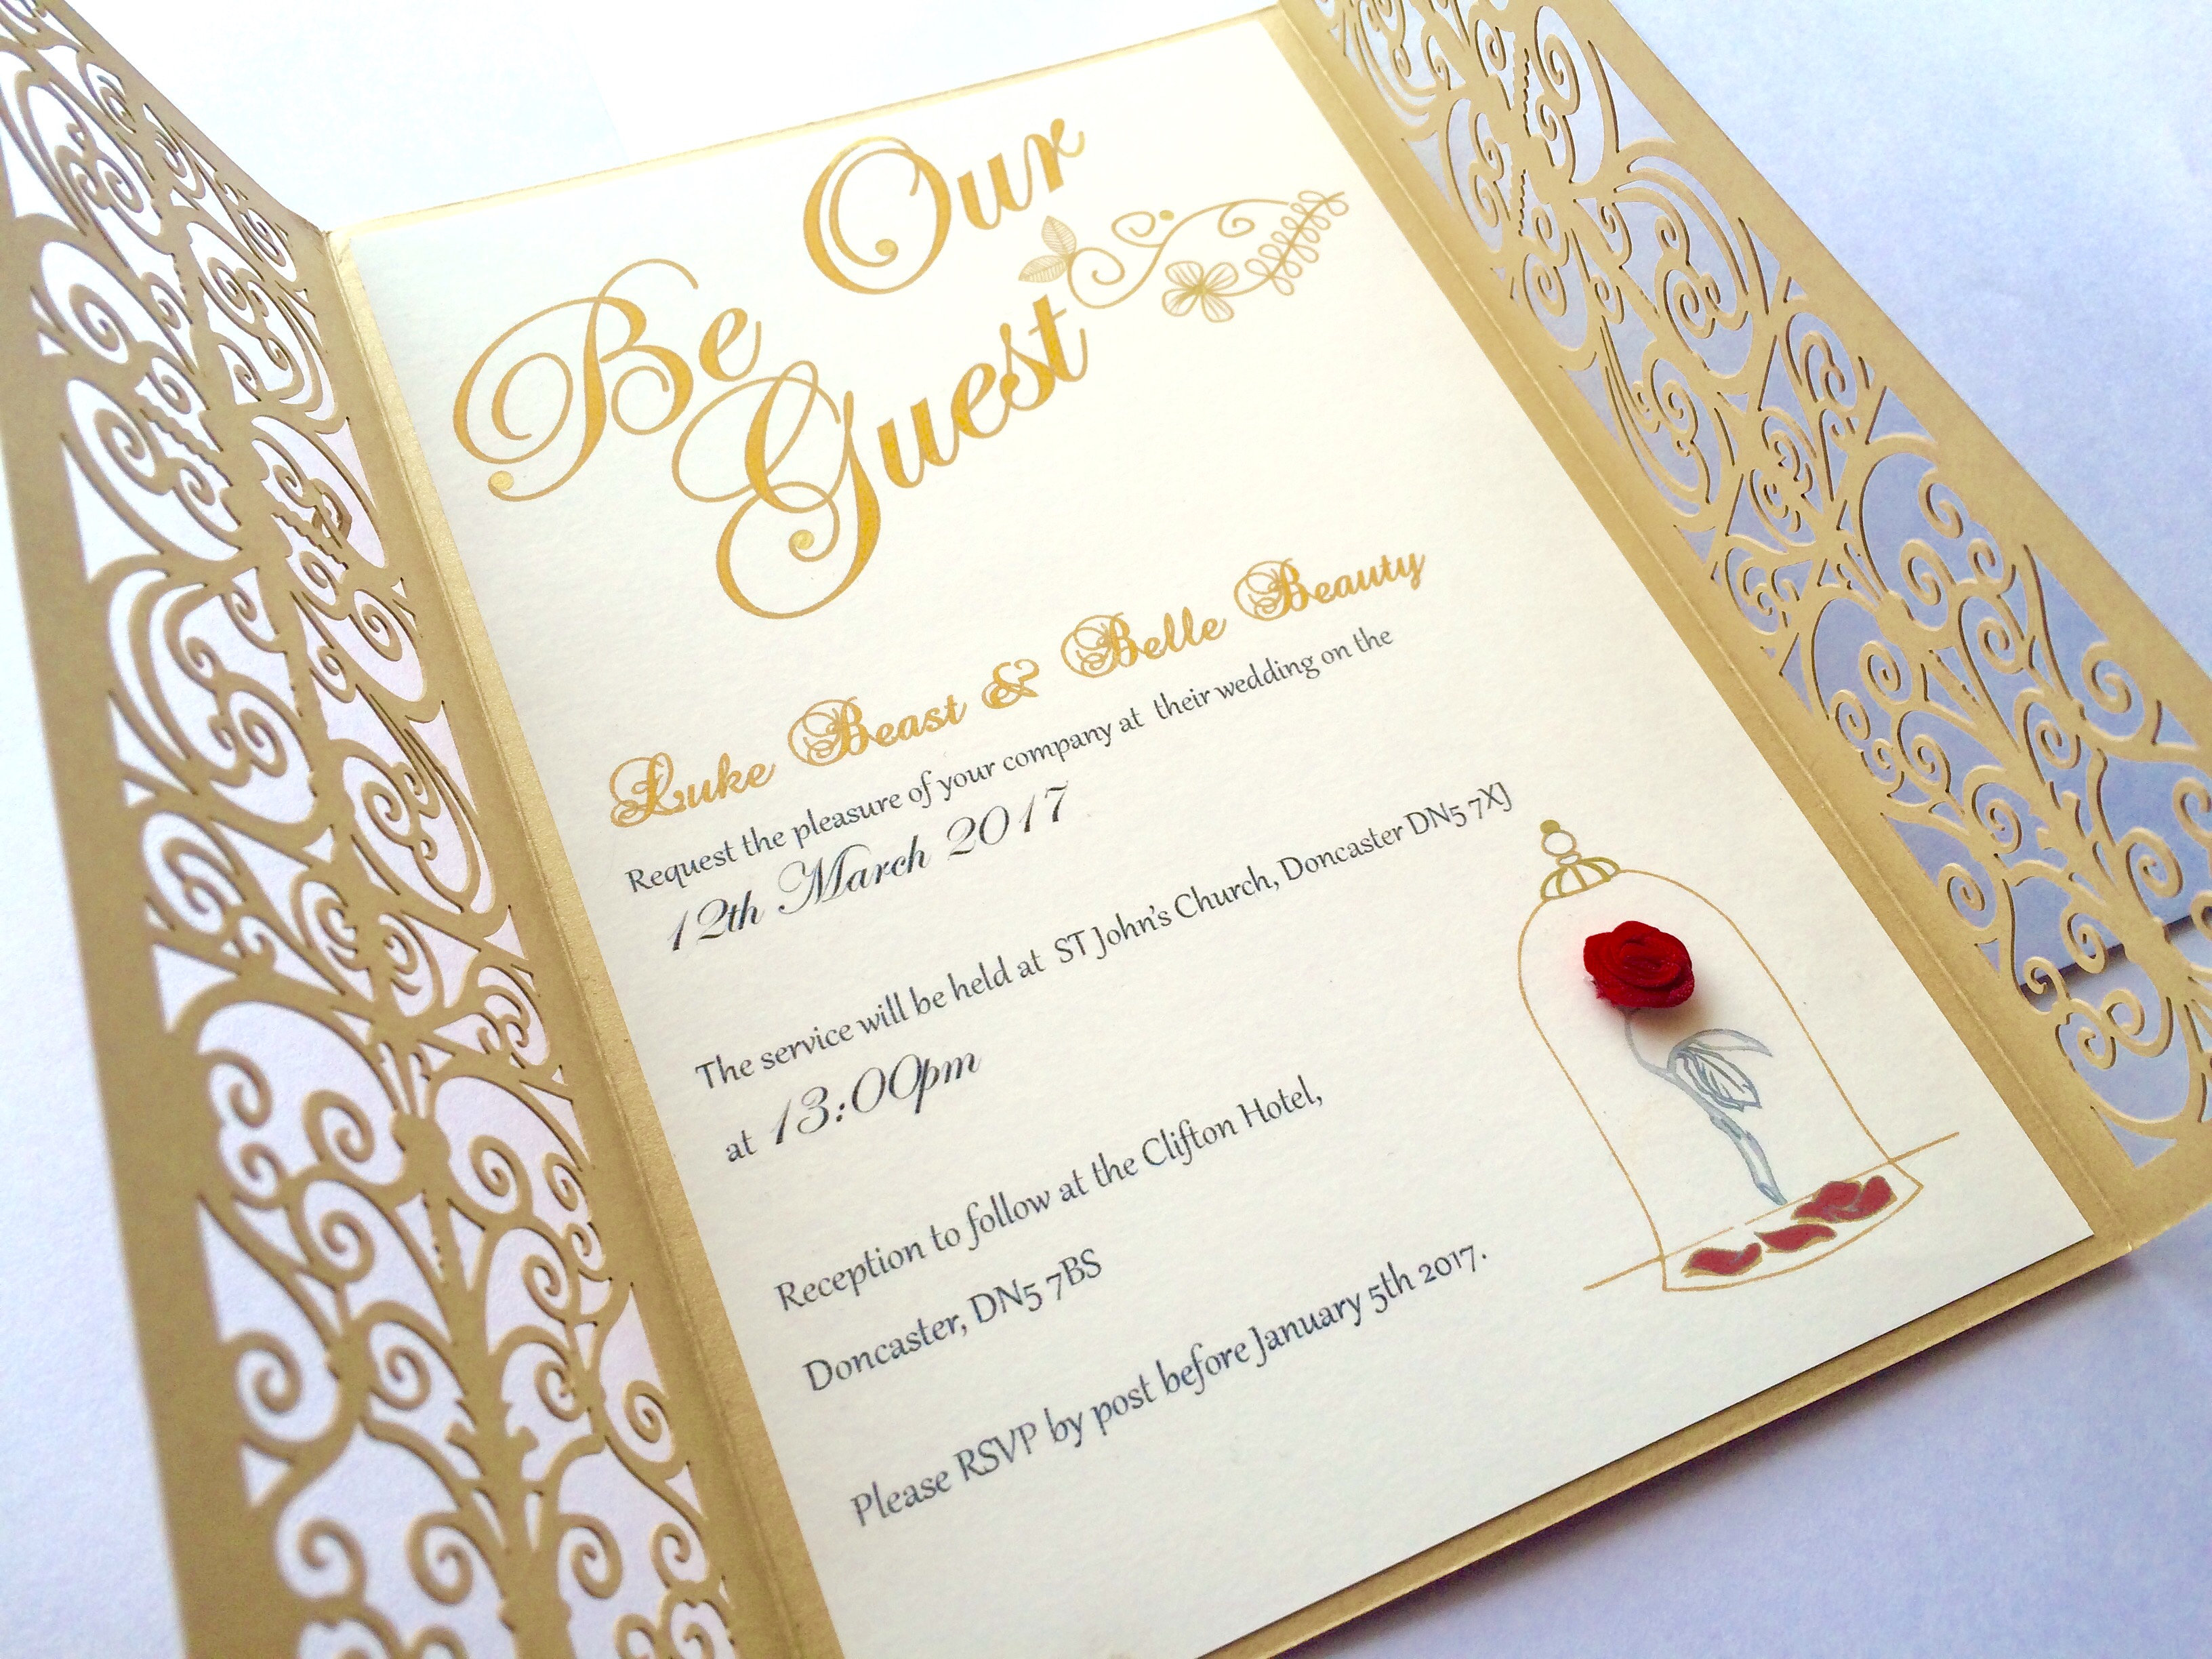 My Little Future Wedding Invitations Be Our Guest